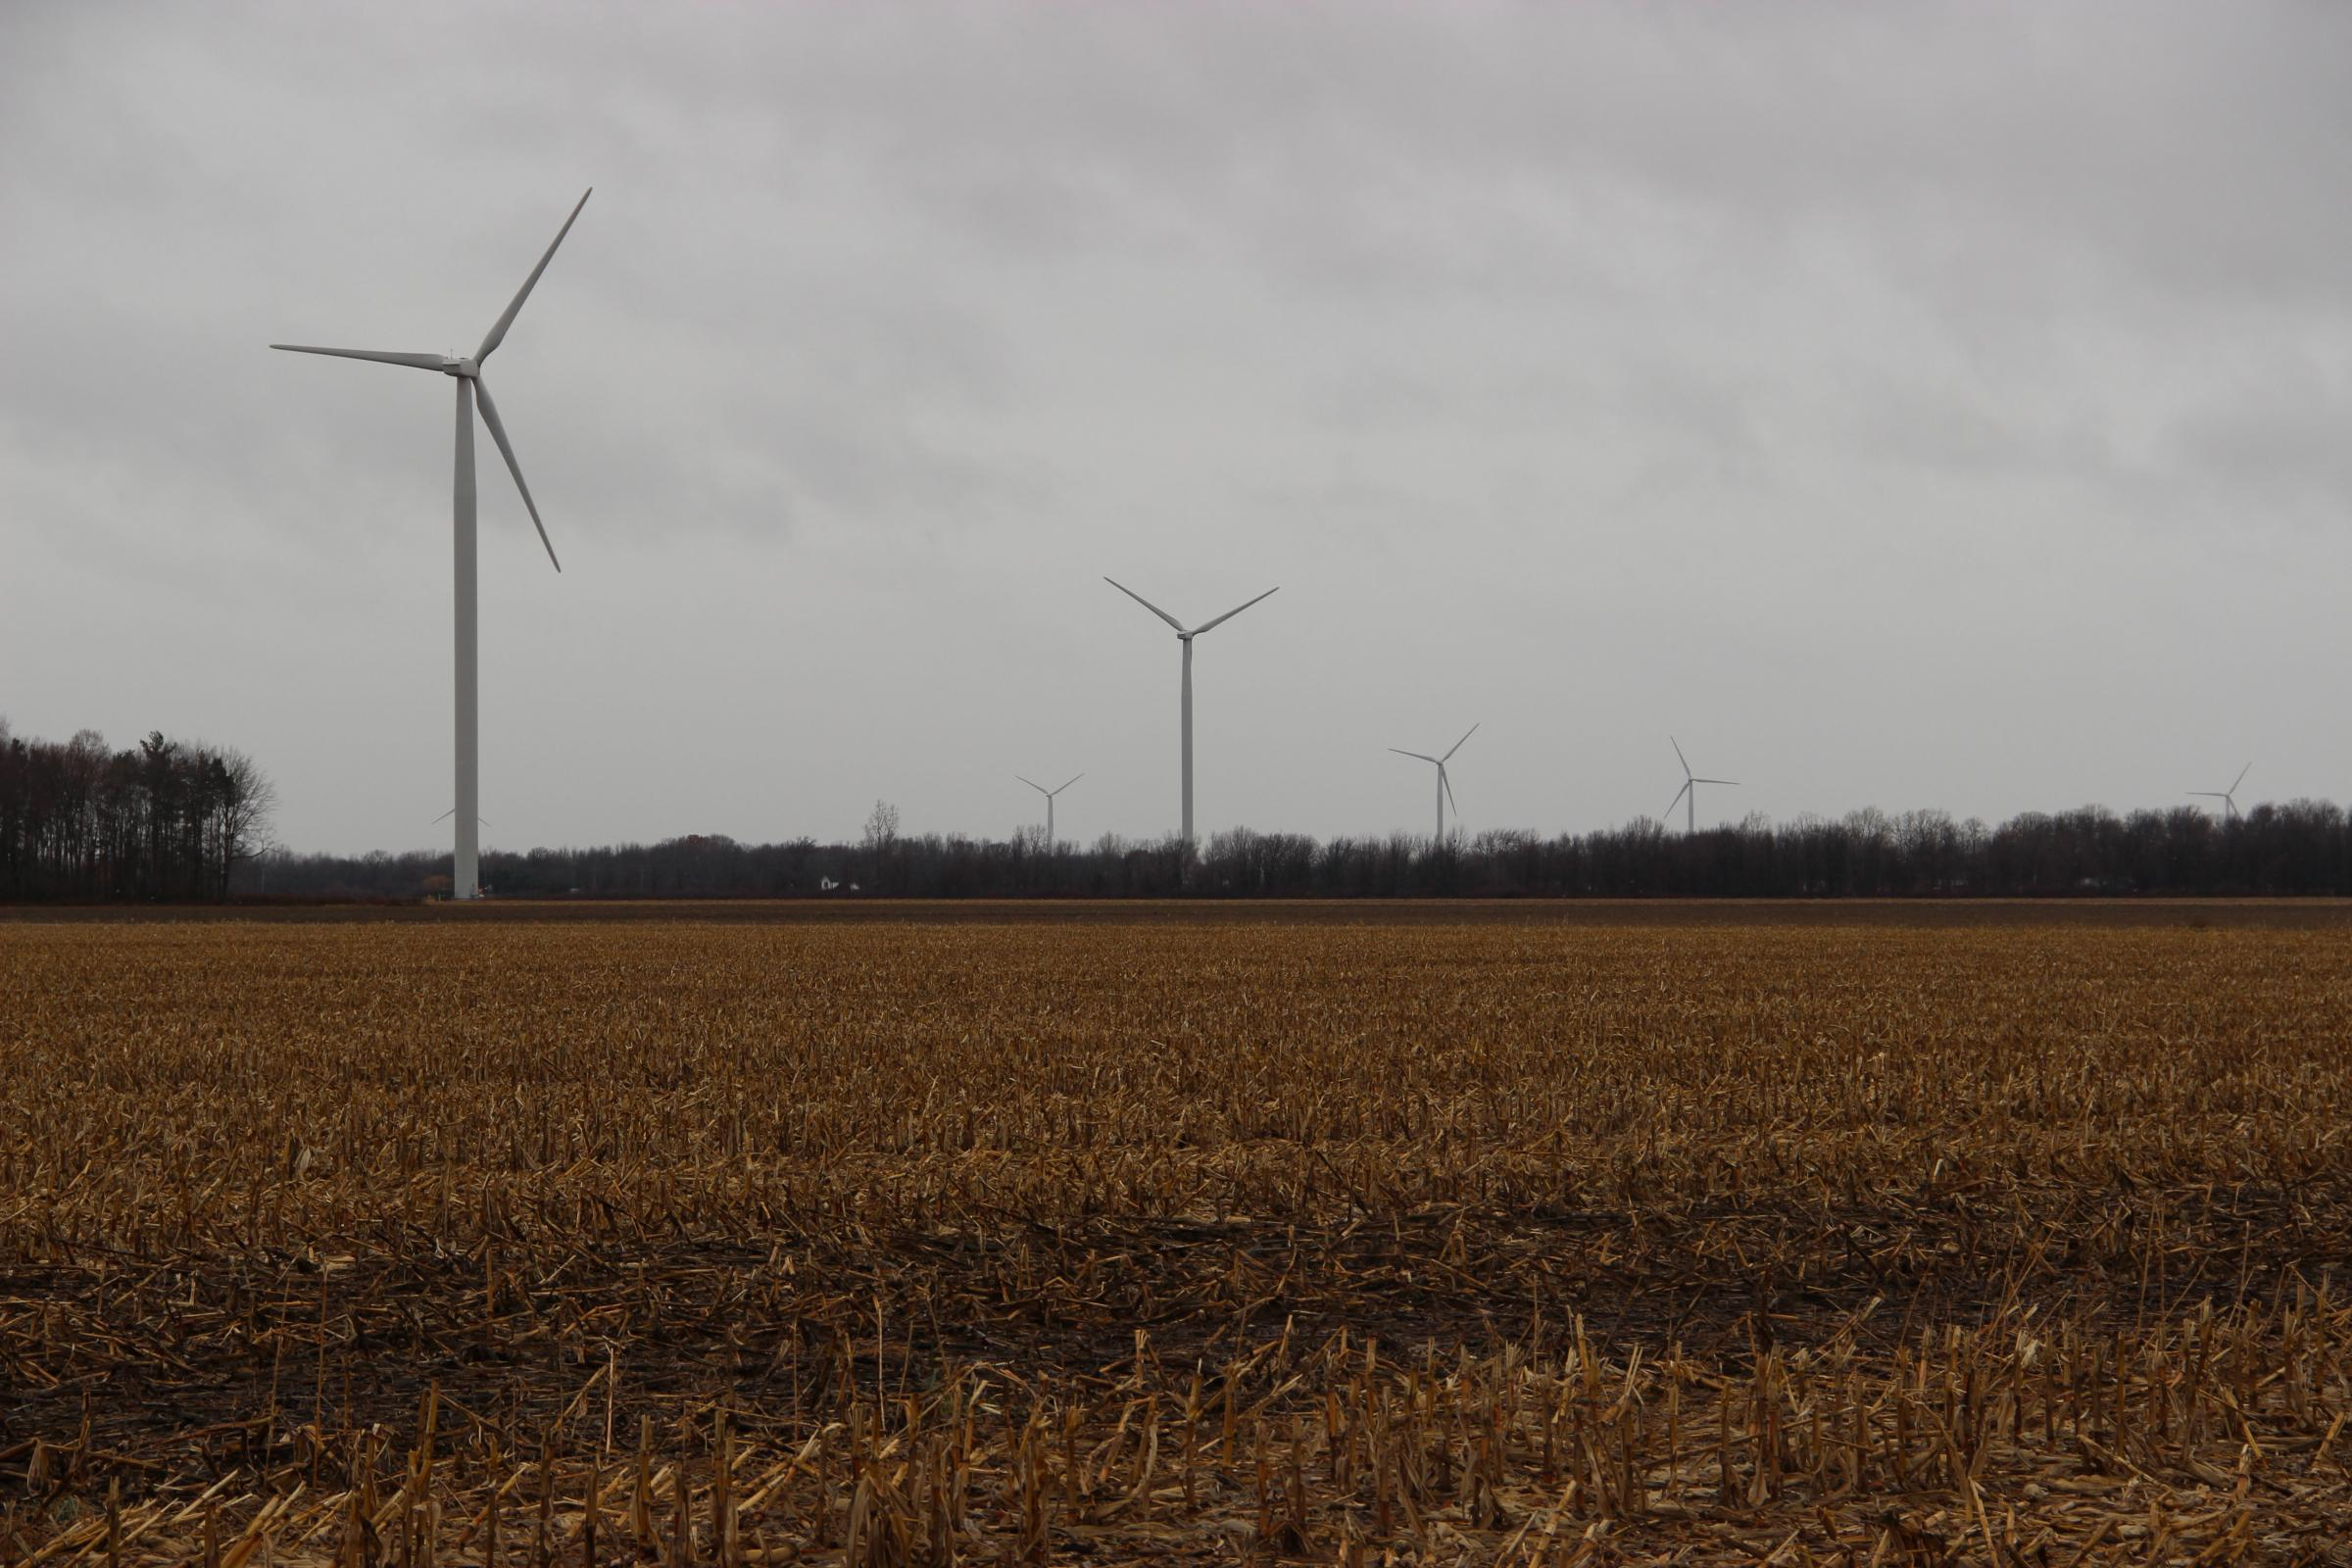 Wind energy is cheaper, but interest in building turbines is waning ...